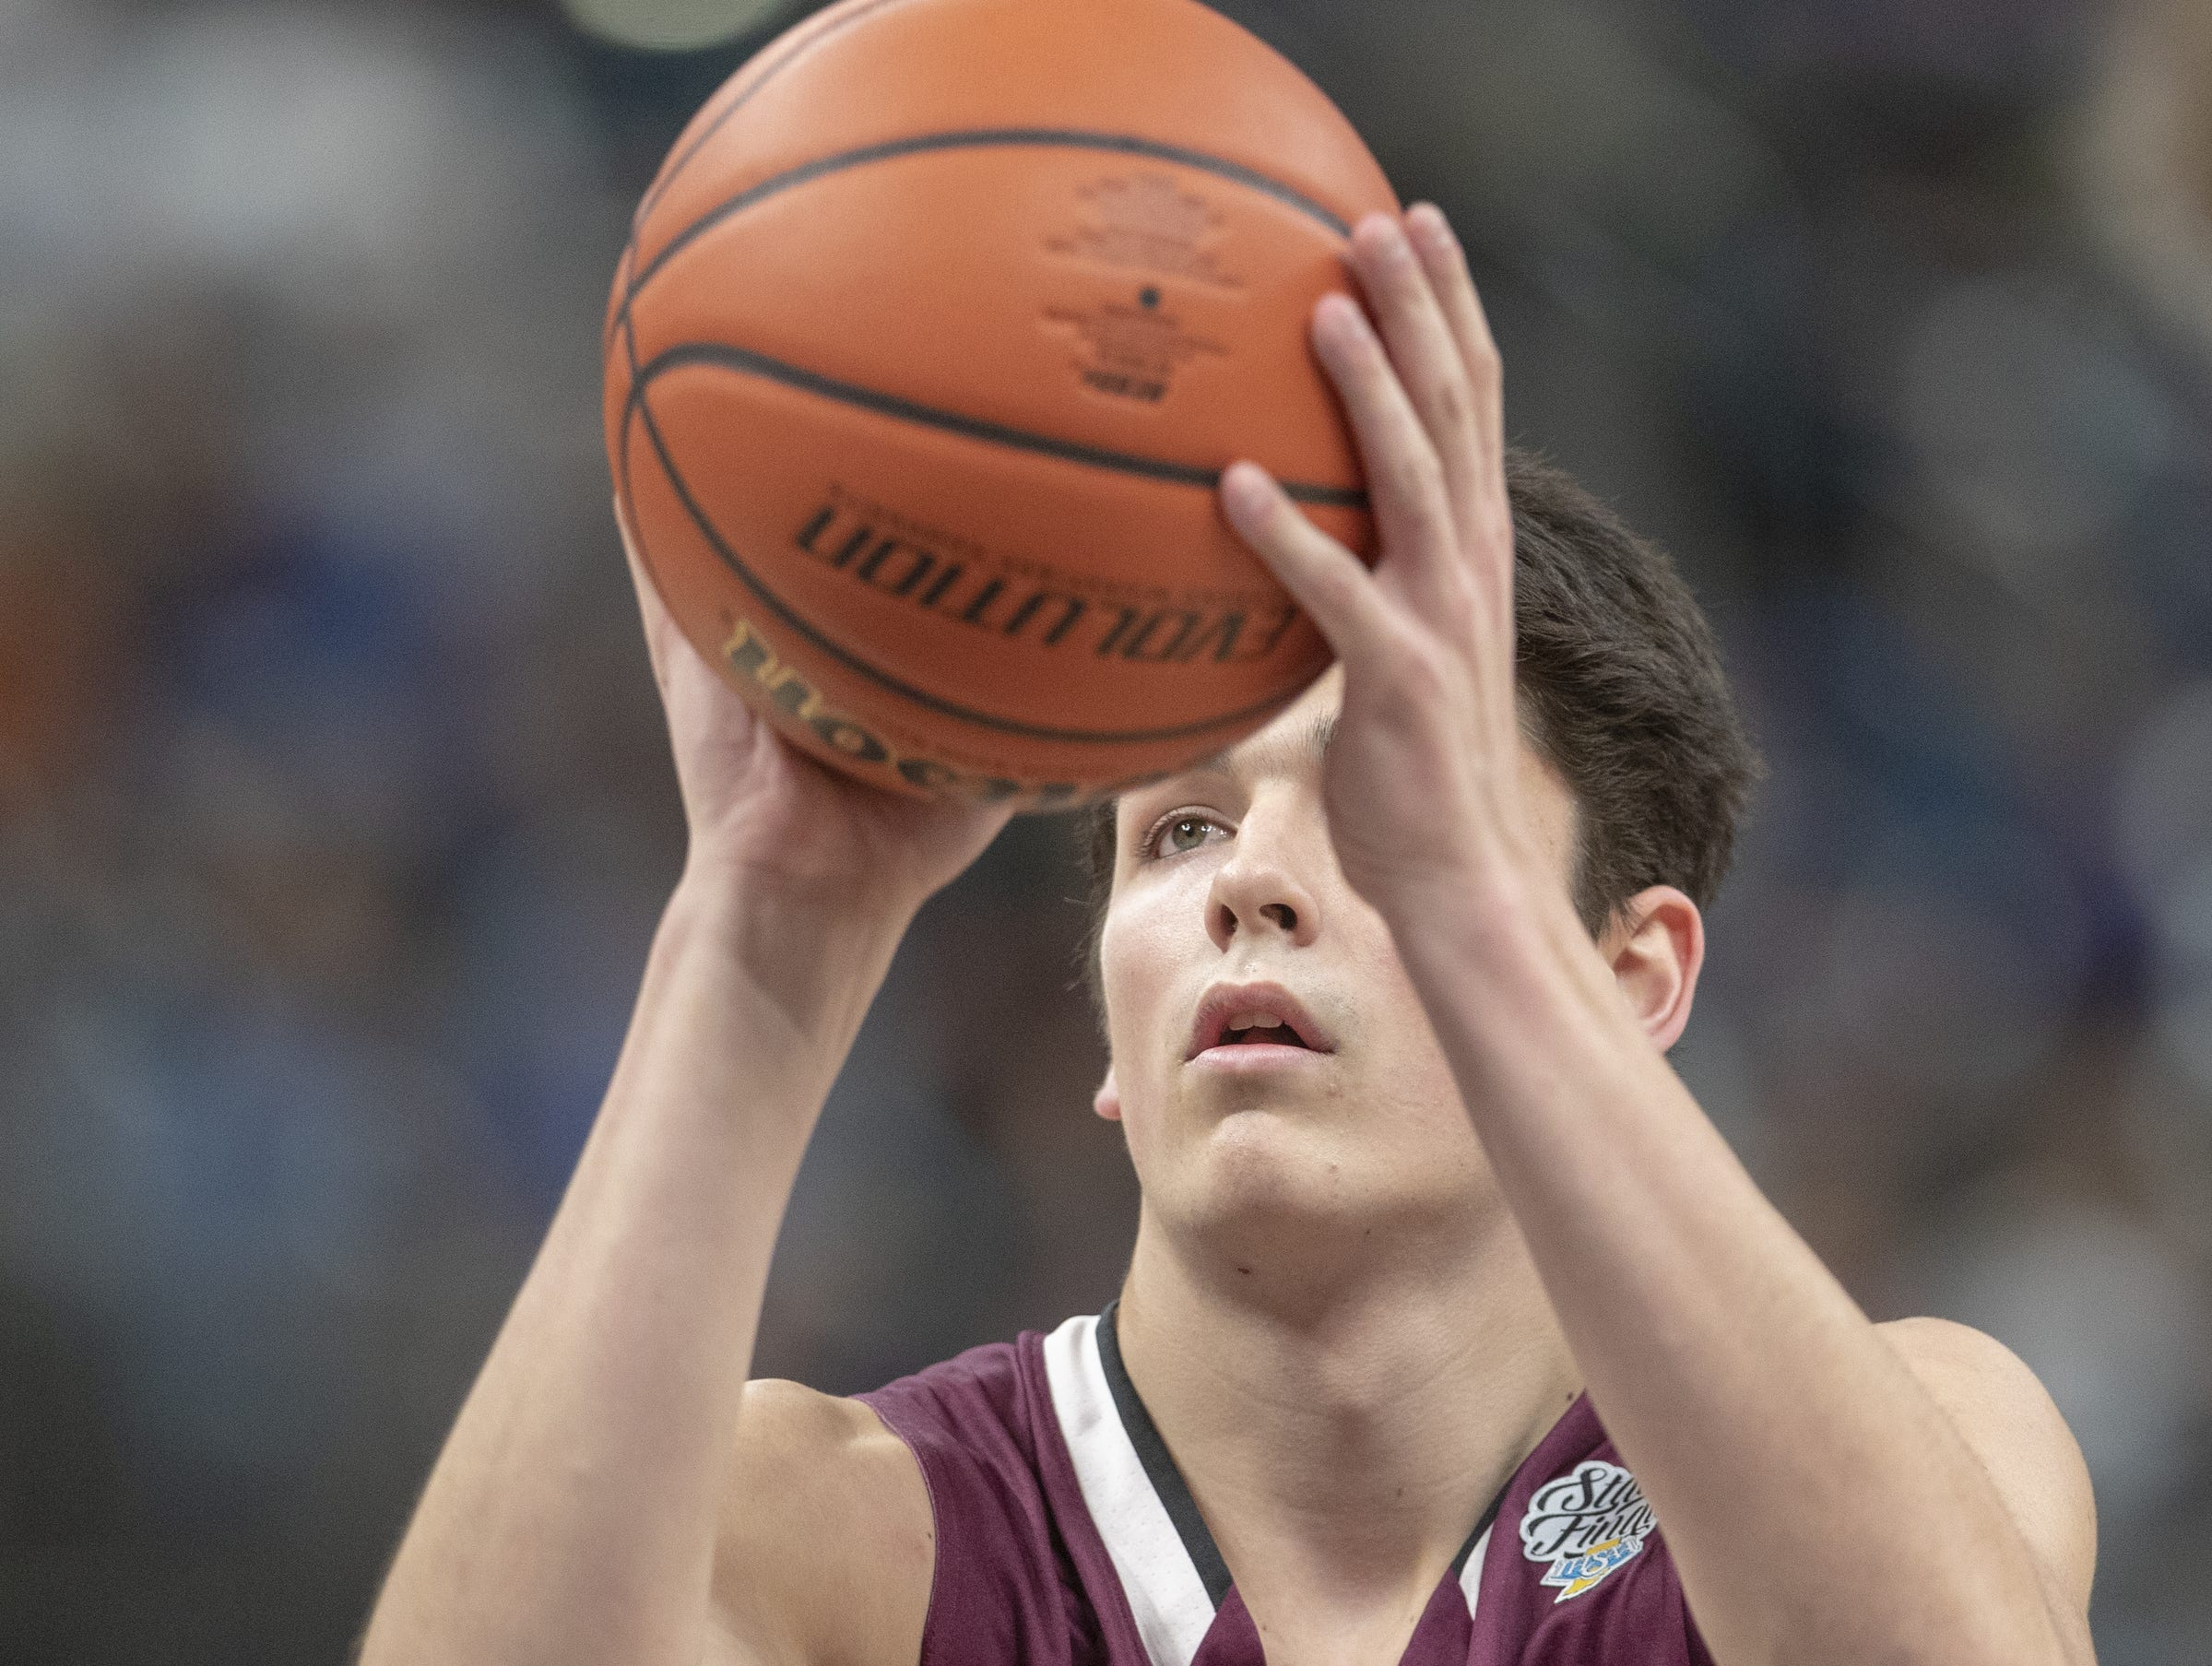 Trey Galloway of Culver Academies shoots a freethrow vs. Silver Creek Dragons in the Class 3S Boys Basketball State Final, Bankers Life Fieldhouse, Indianapolis, Saturday, March 23, 2019. Silver Creek won 52-49.